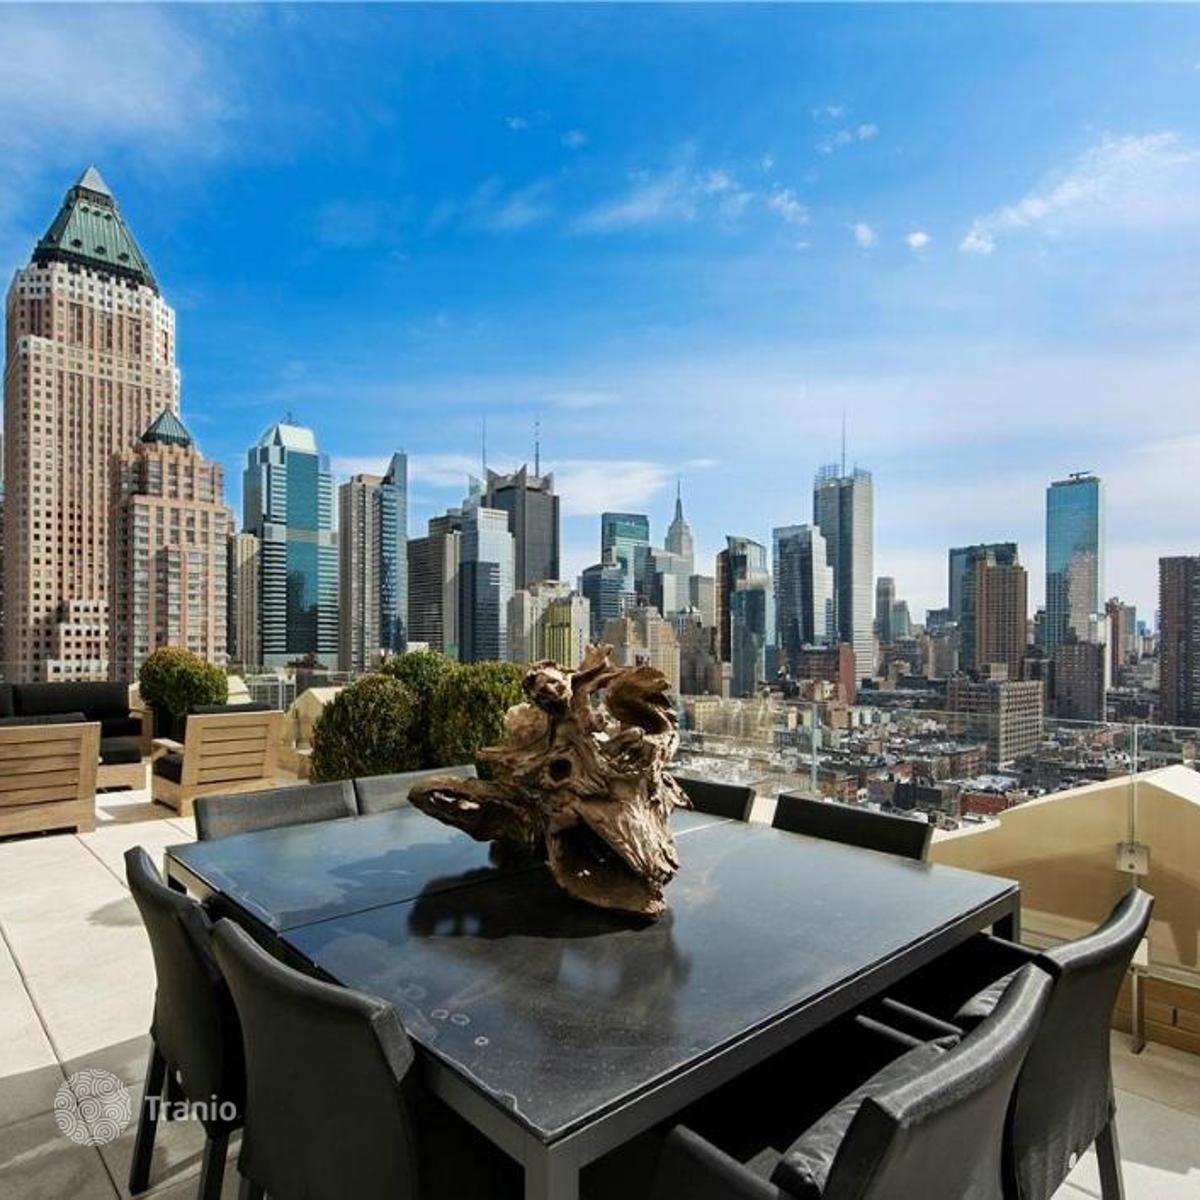 Apartments Downtown Manhattan: Listing #1445439 In Midtown Manhattan, Manhattan, New York